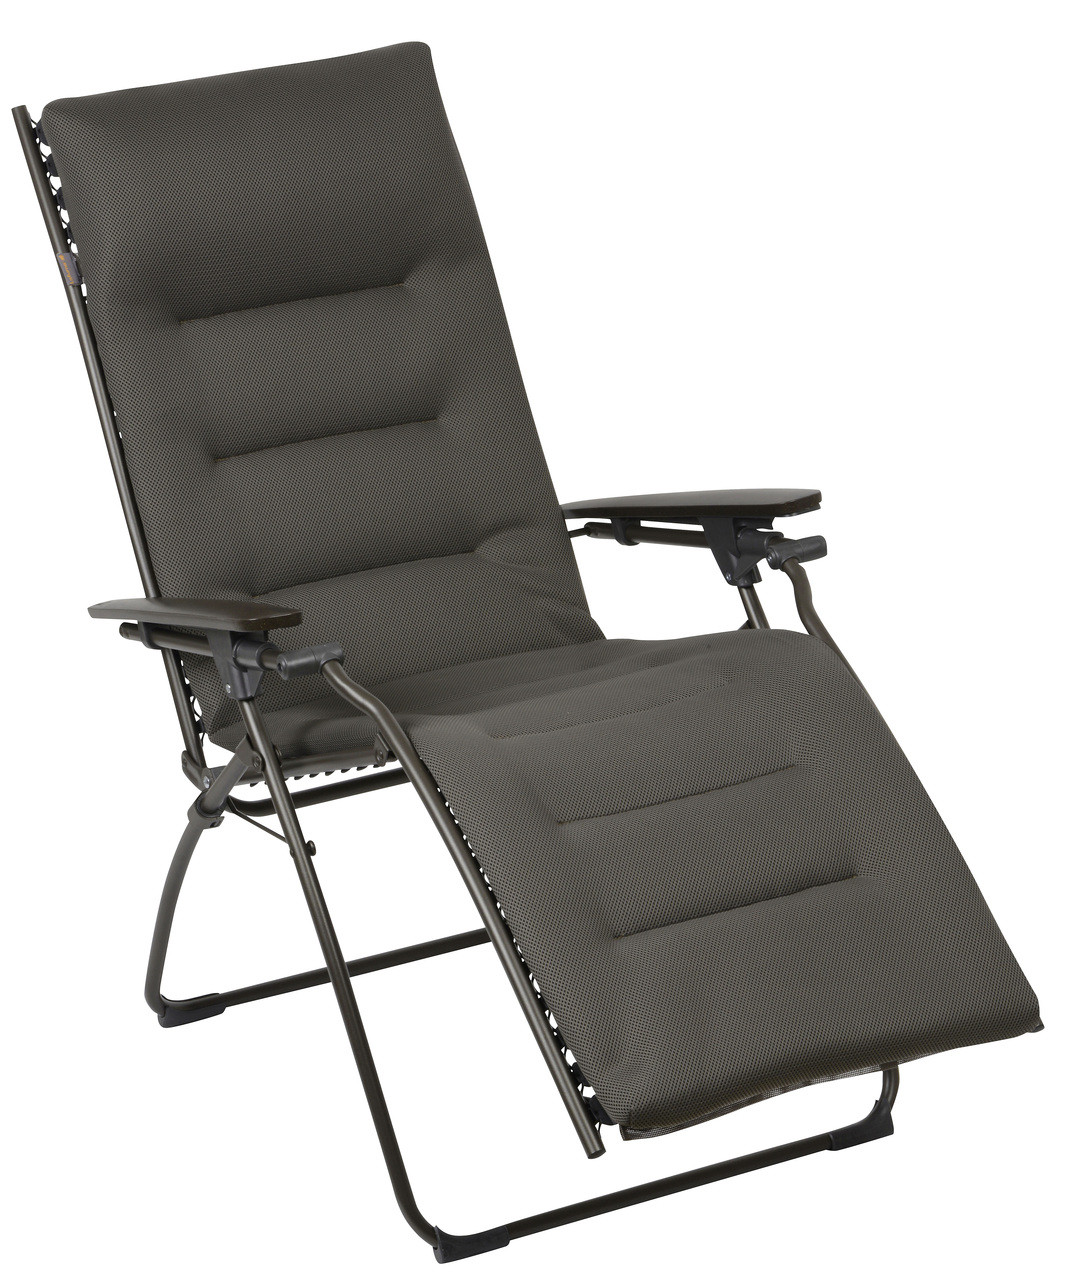 Padded Zero Gravity Chair Lafuma Evolution Recliner Acier With Padded Air Comfort